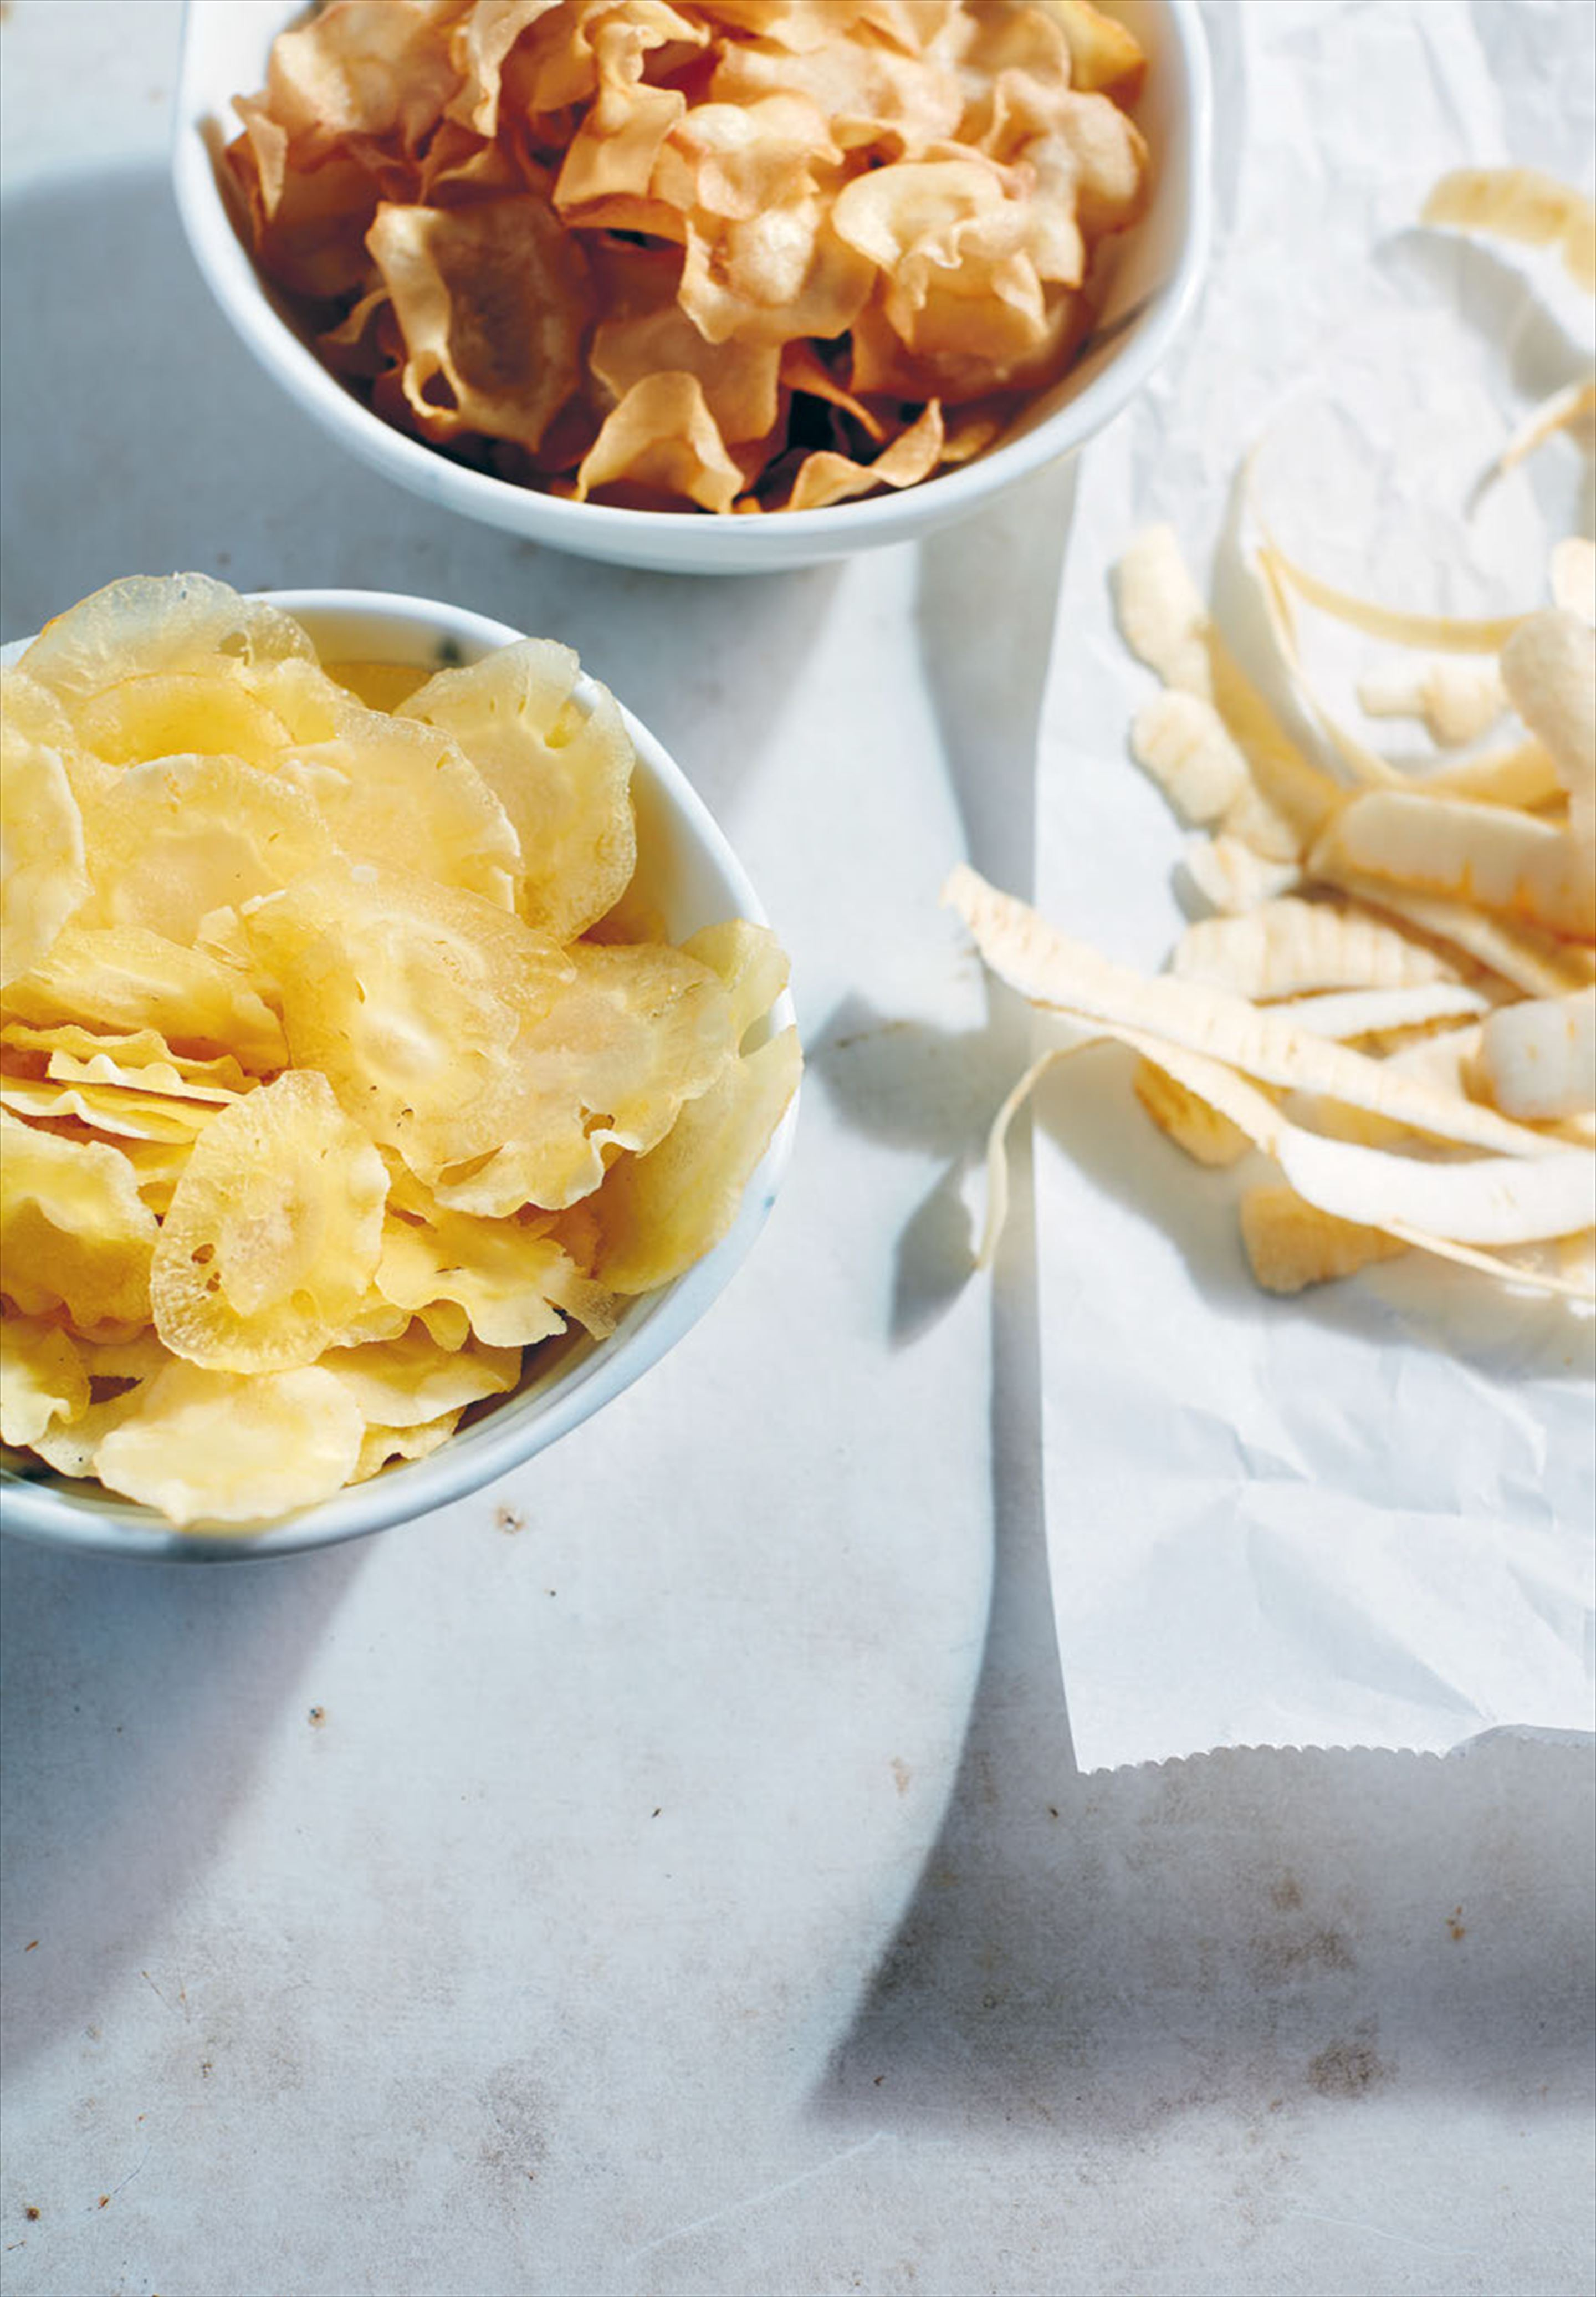 Sweet and savoury parsnip chips